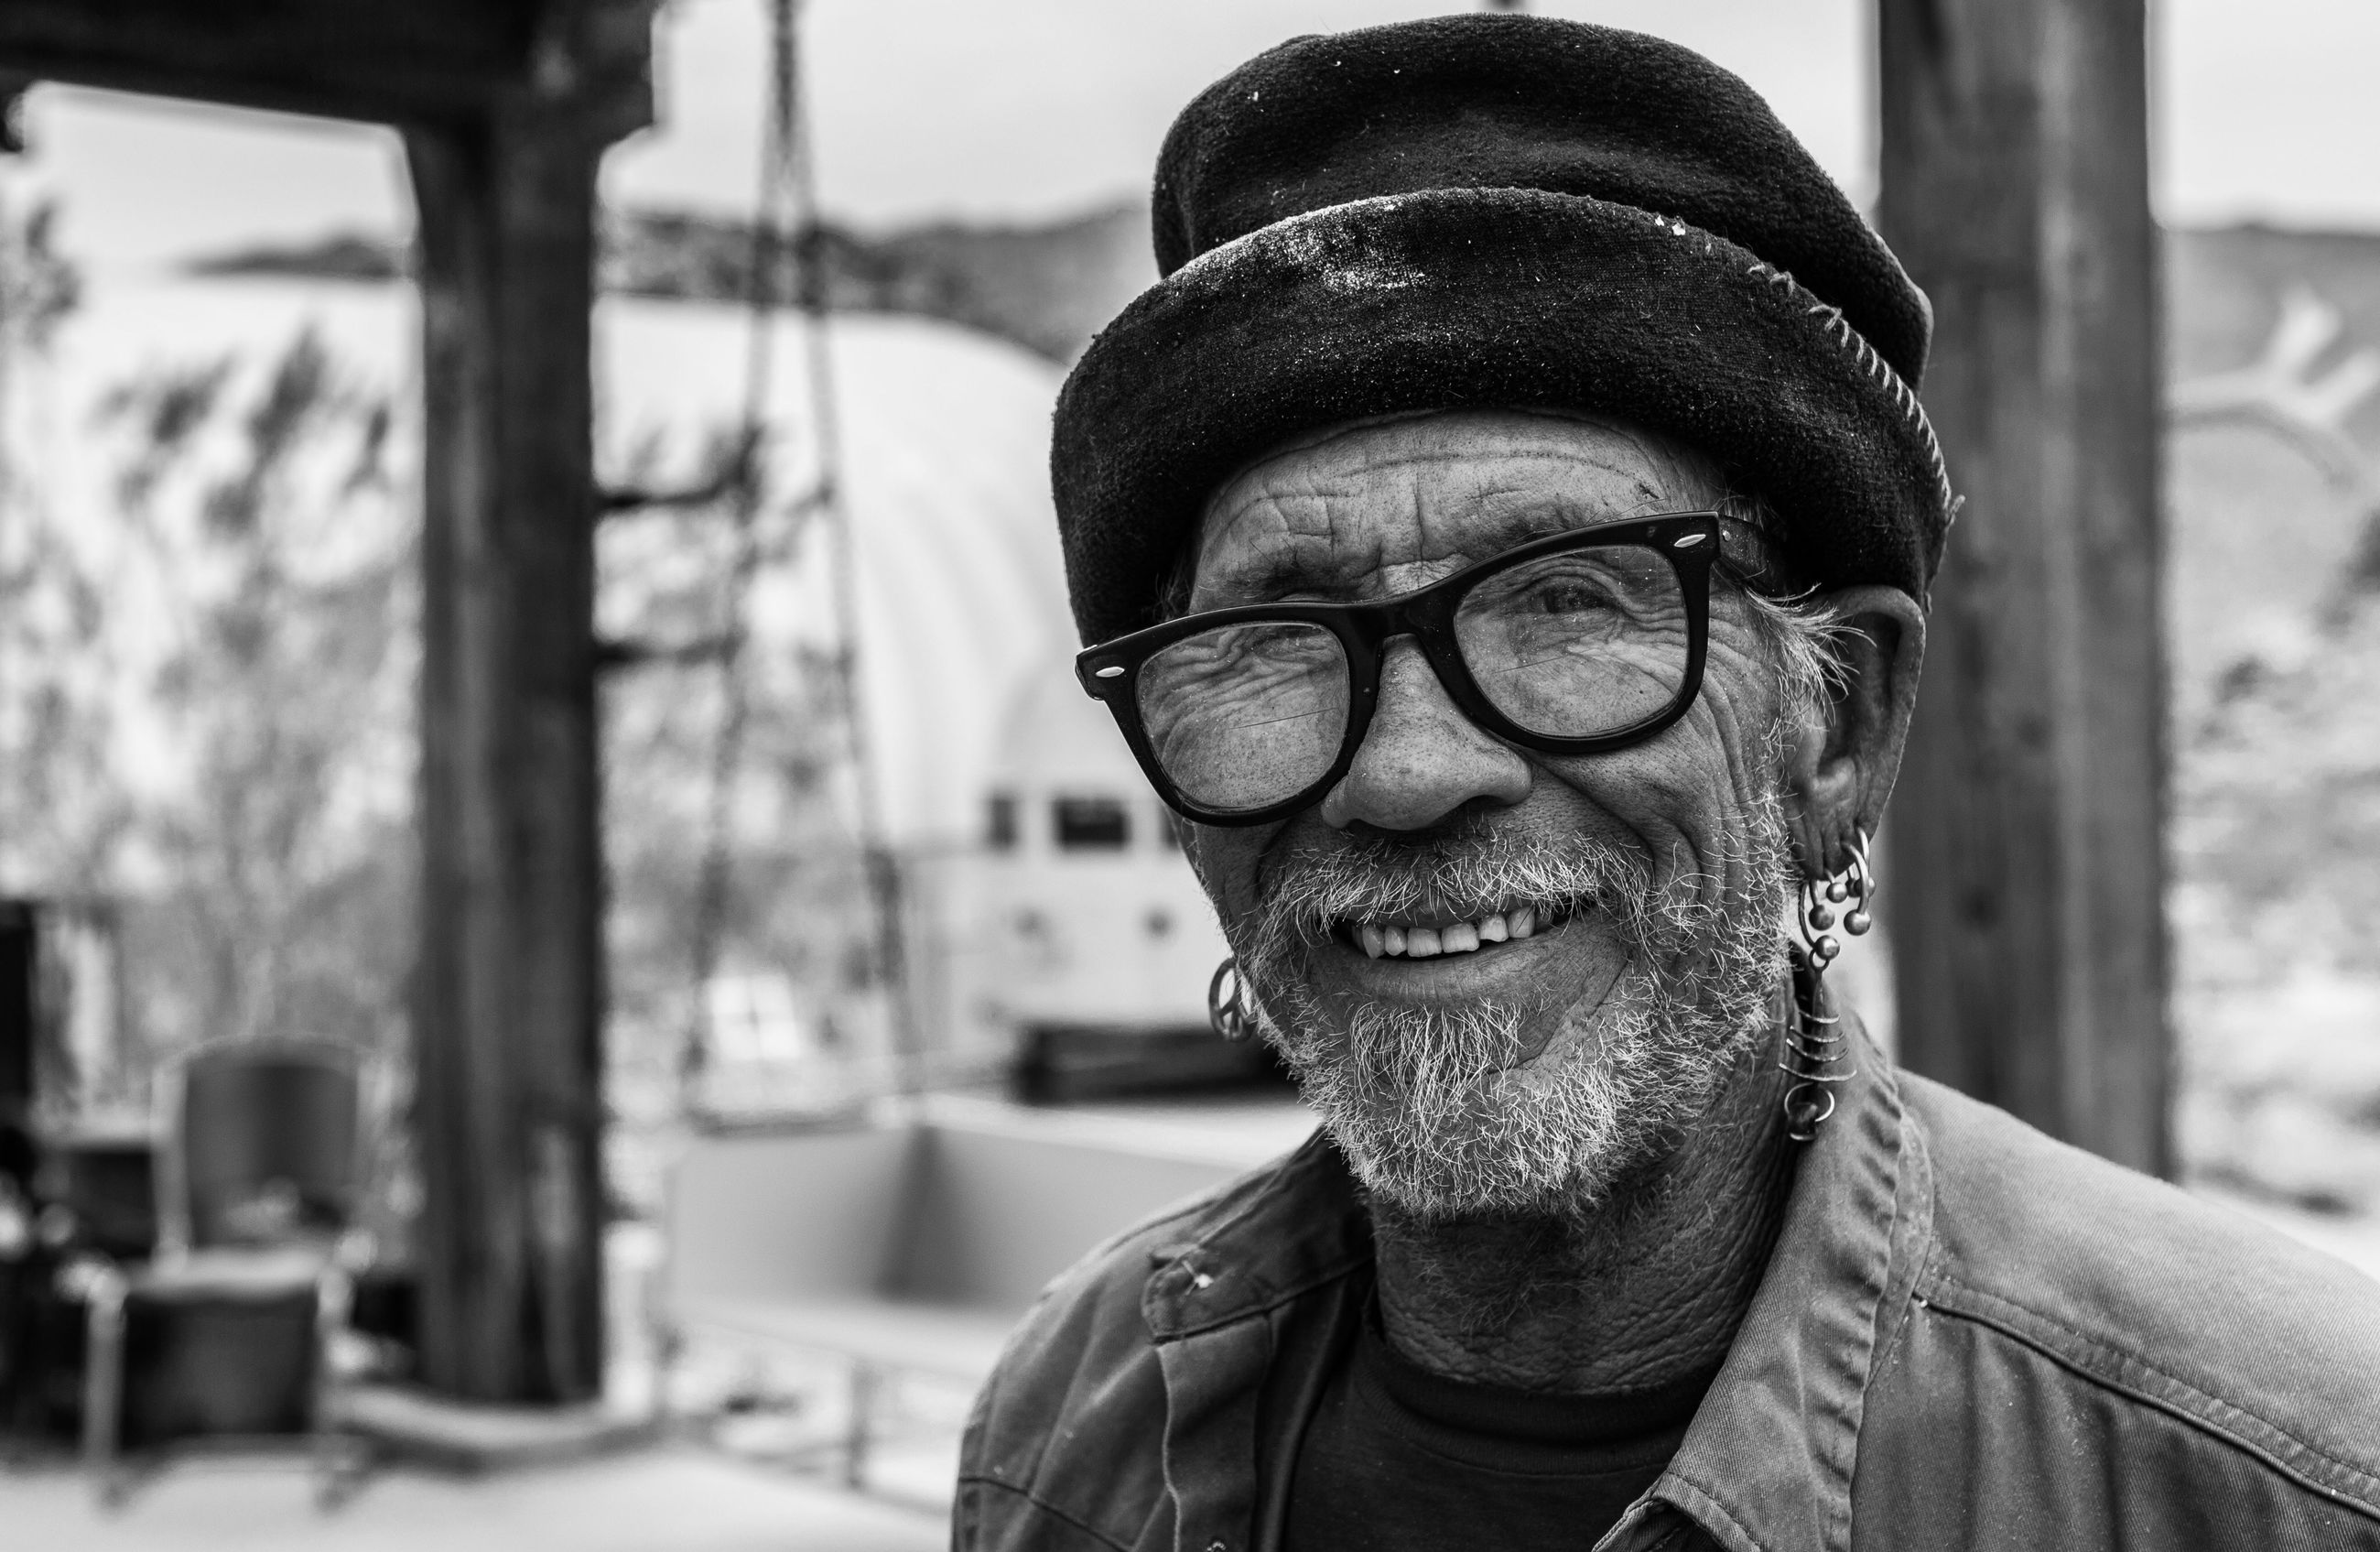 one person, focus on foreground, real people, lifestyles, front view, one man only, headshot, looking at camera, beard, portrait, leisure activity, eyeglasses, adults only, close-up, only men, adult, day, men, people, outdoors, senior men, human body part, young adult